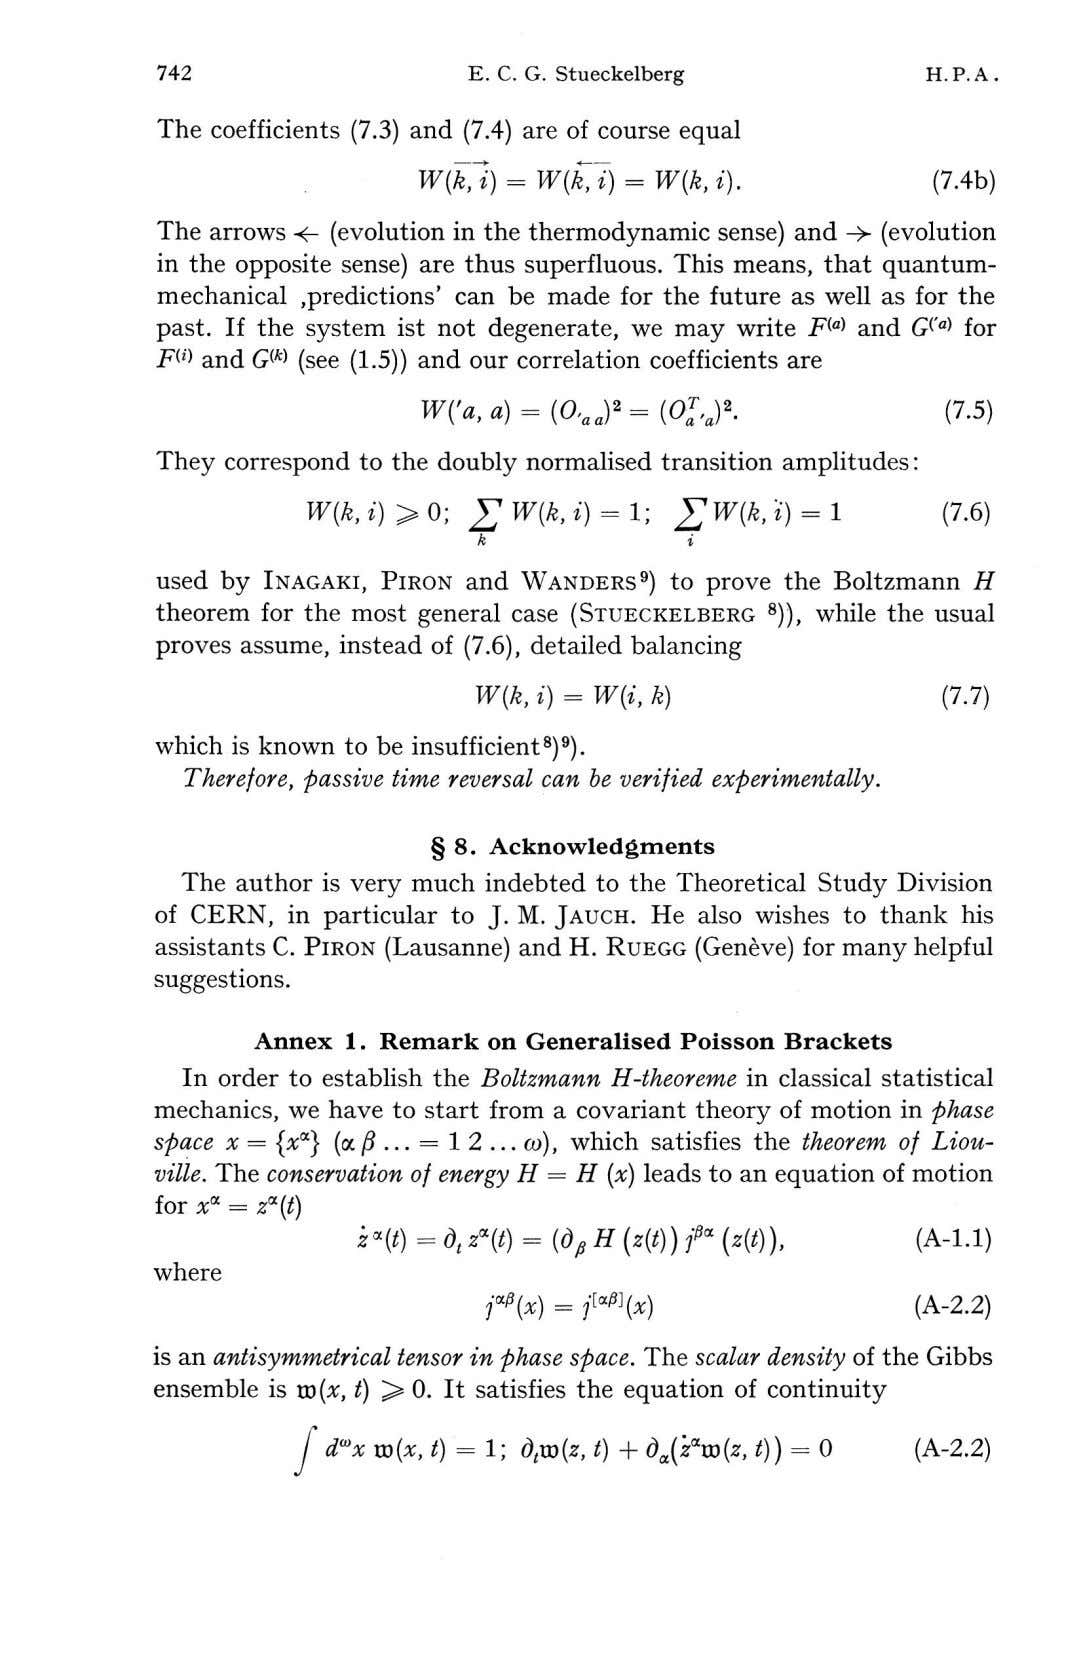 742 E. C. G. Stueckelberg H. P. A The coefficients (7.3) and (7.4) are of